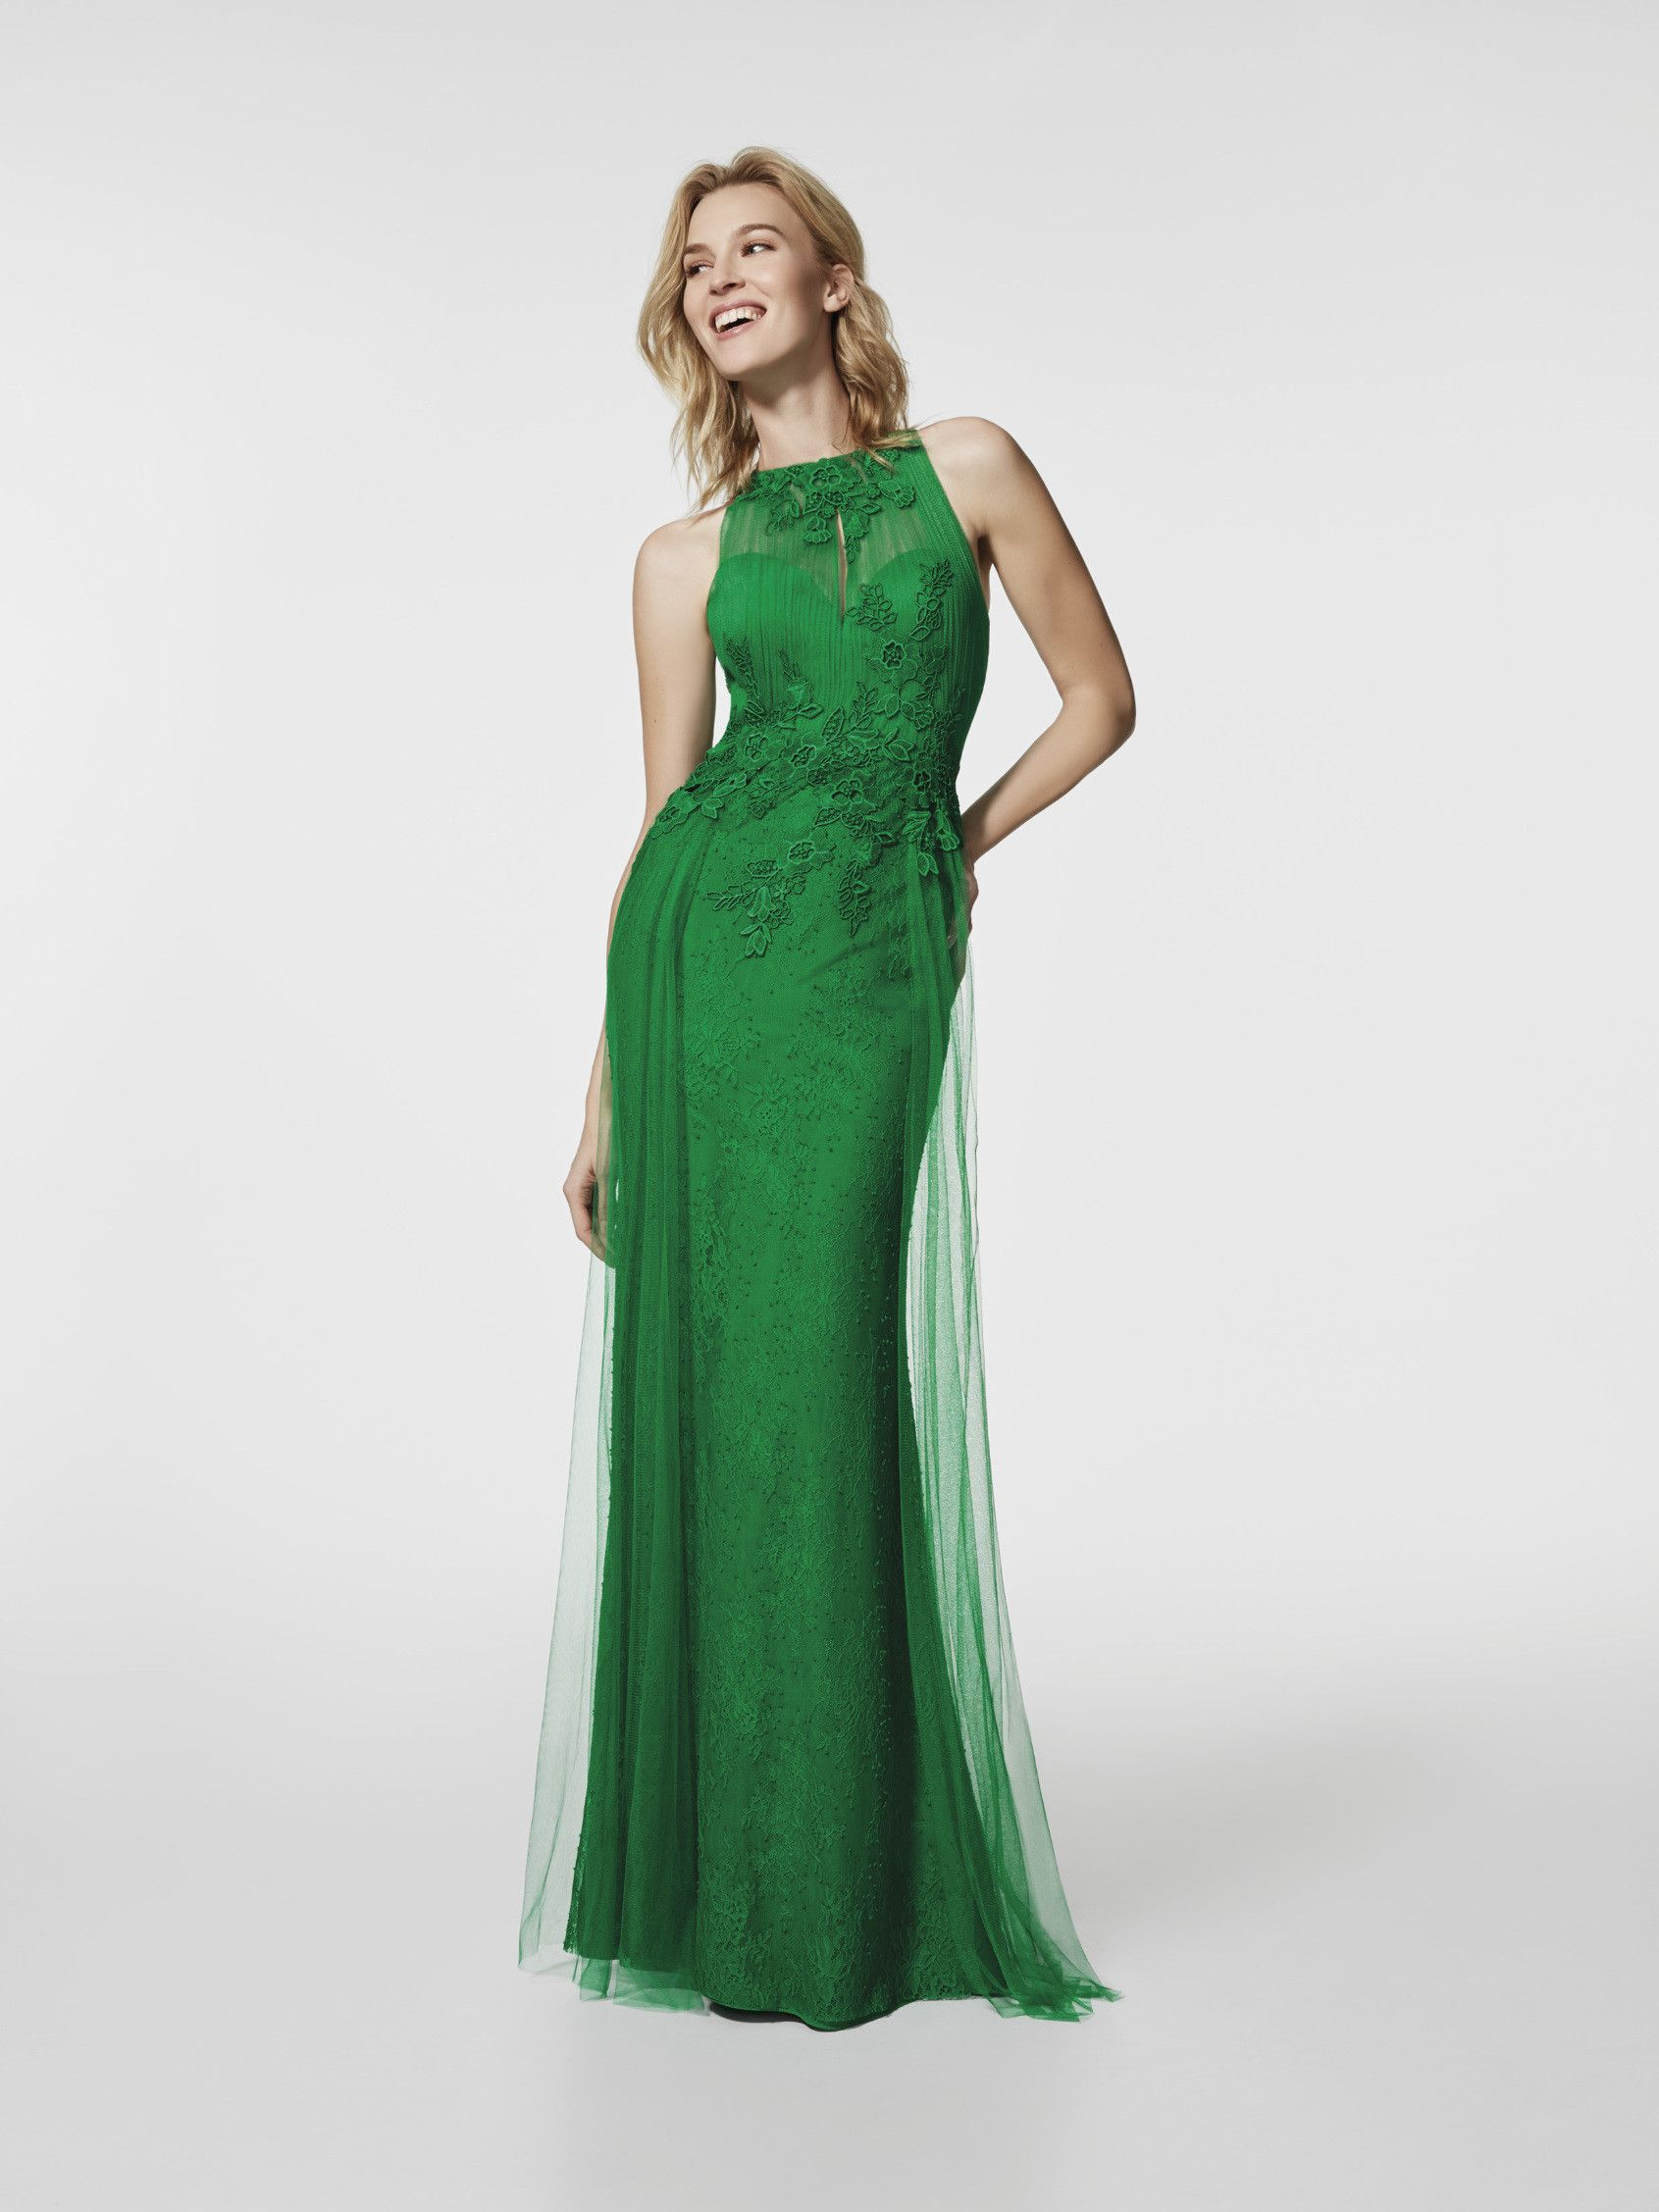 Vestidos invitada de boda 2018 largos color verde Pronovias ... 58680869432b